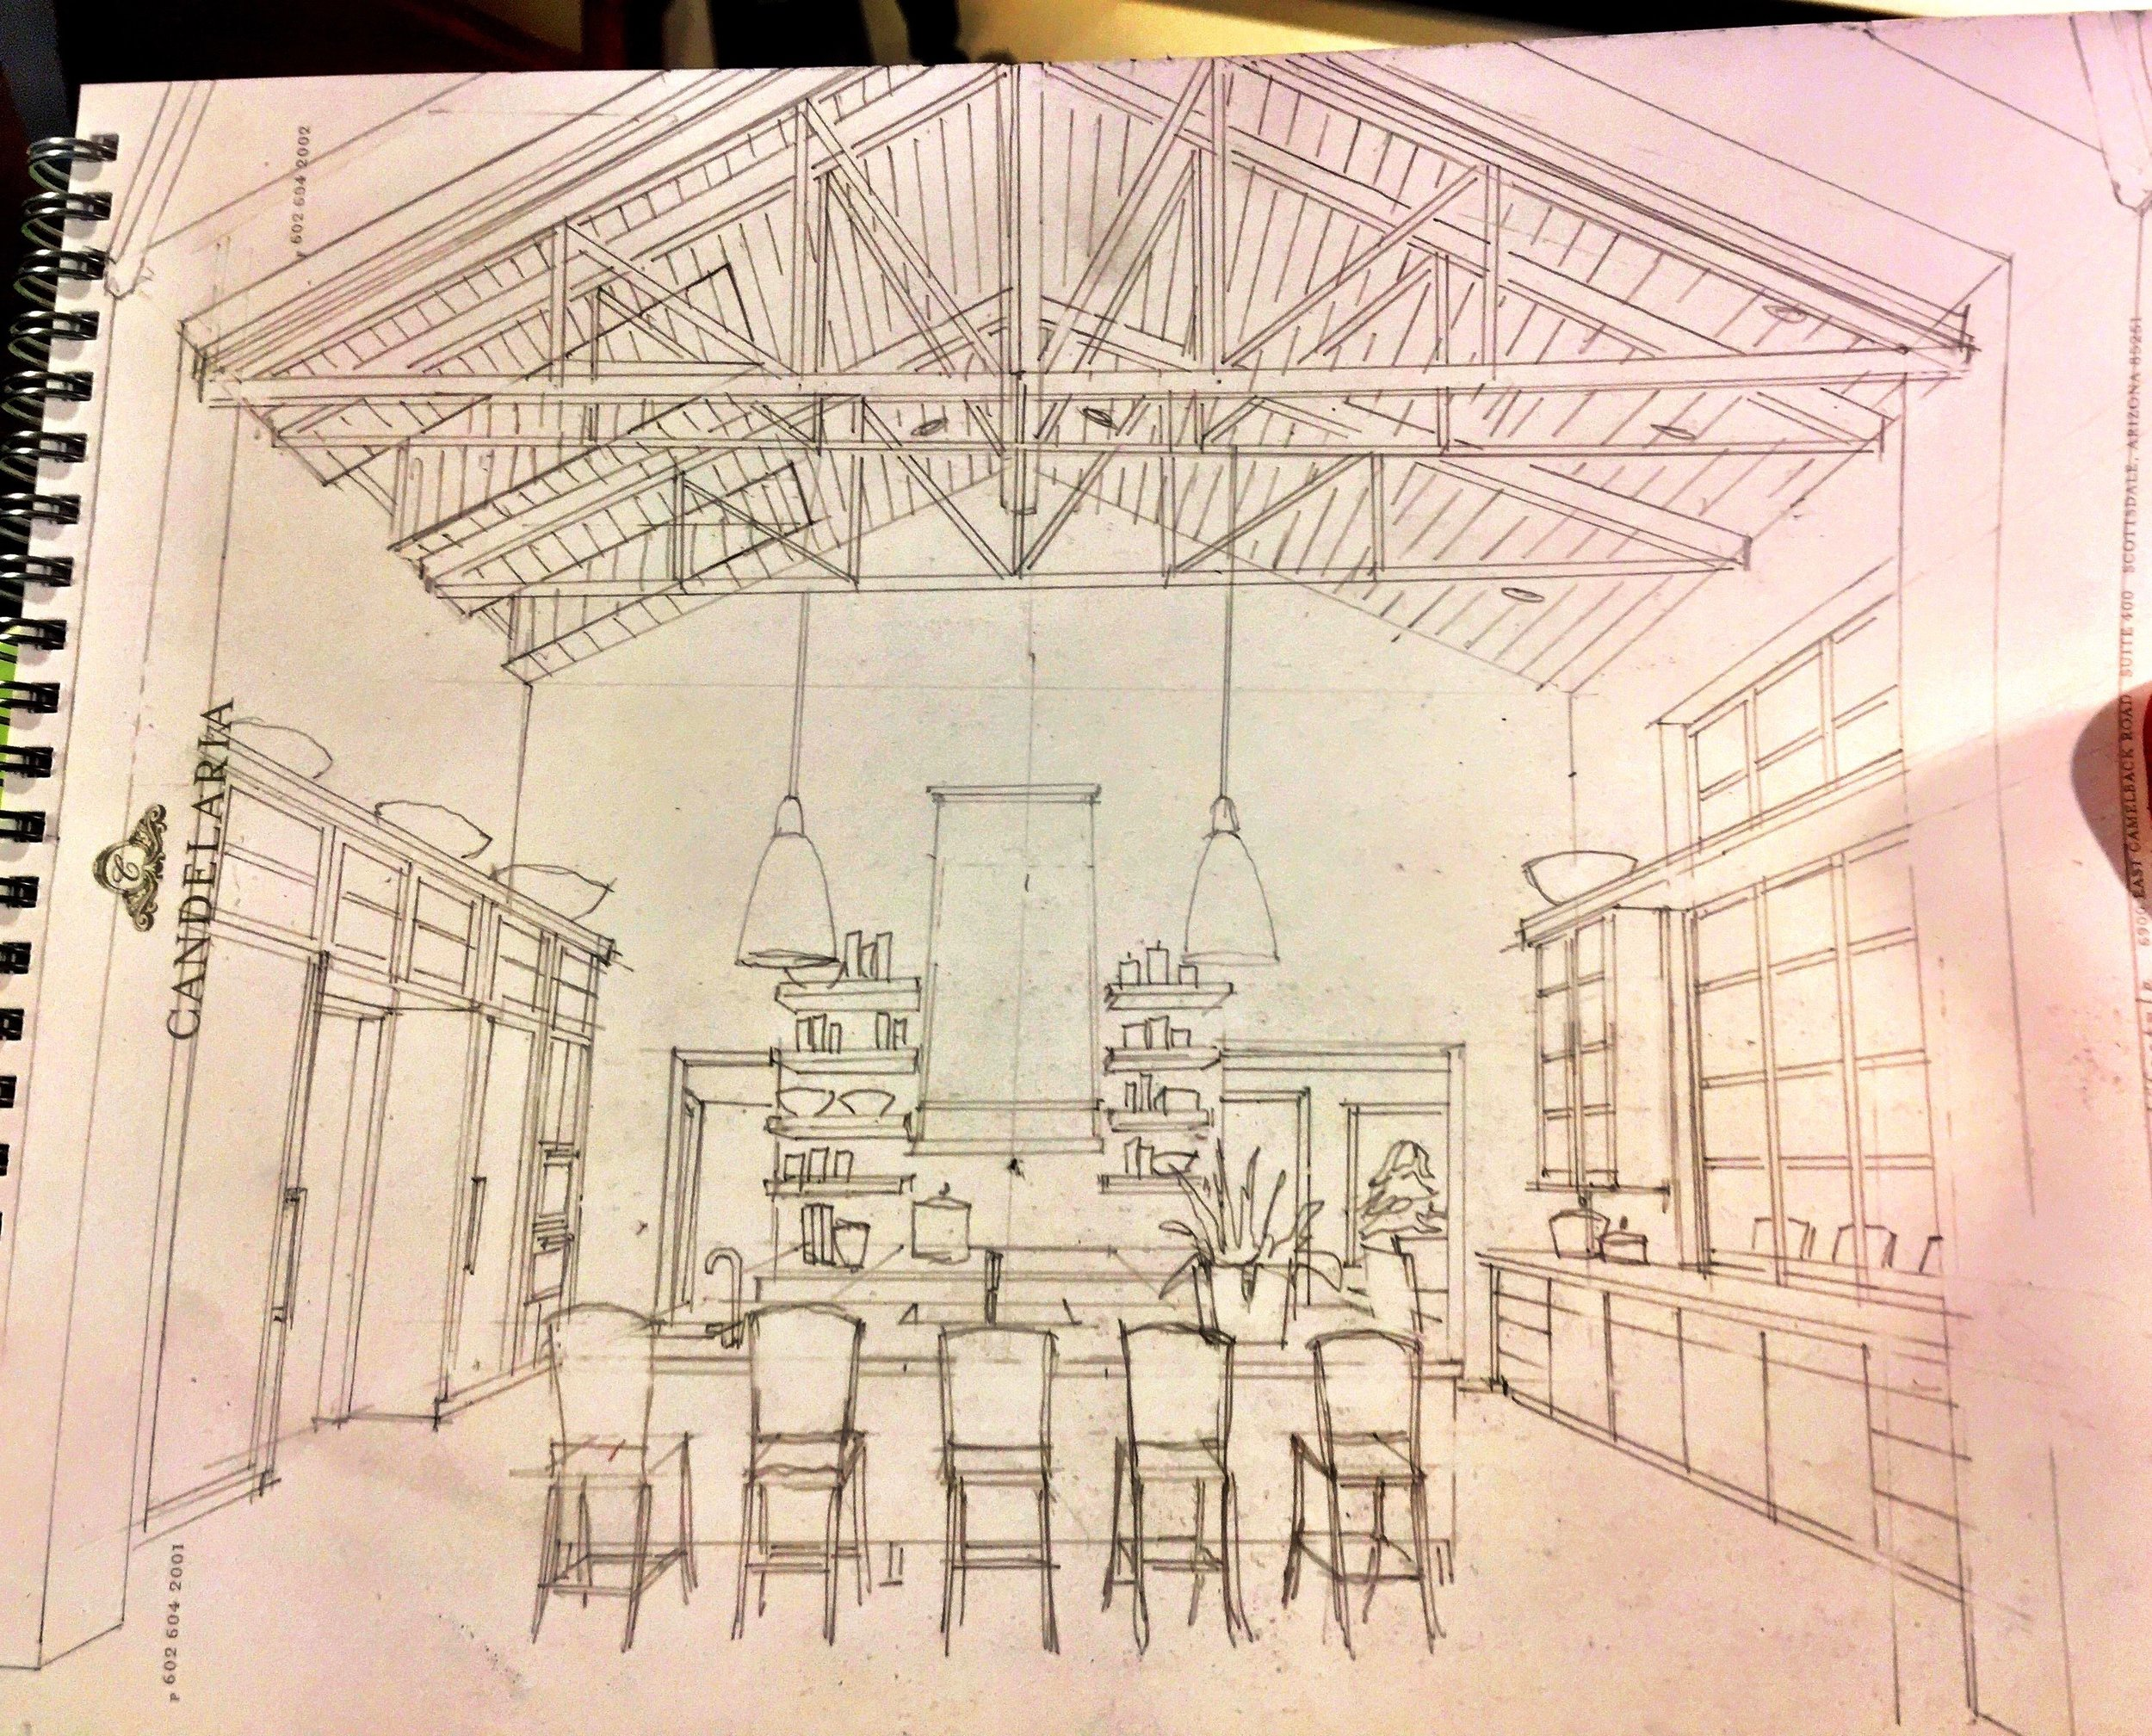 Concept sketch for a new Arcadia Kitchen